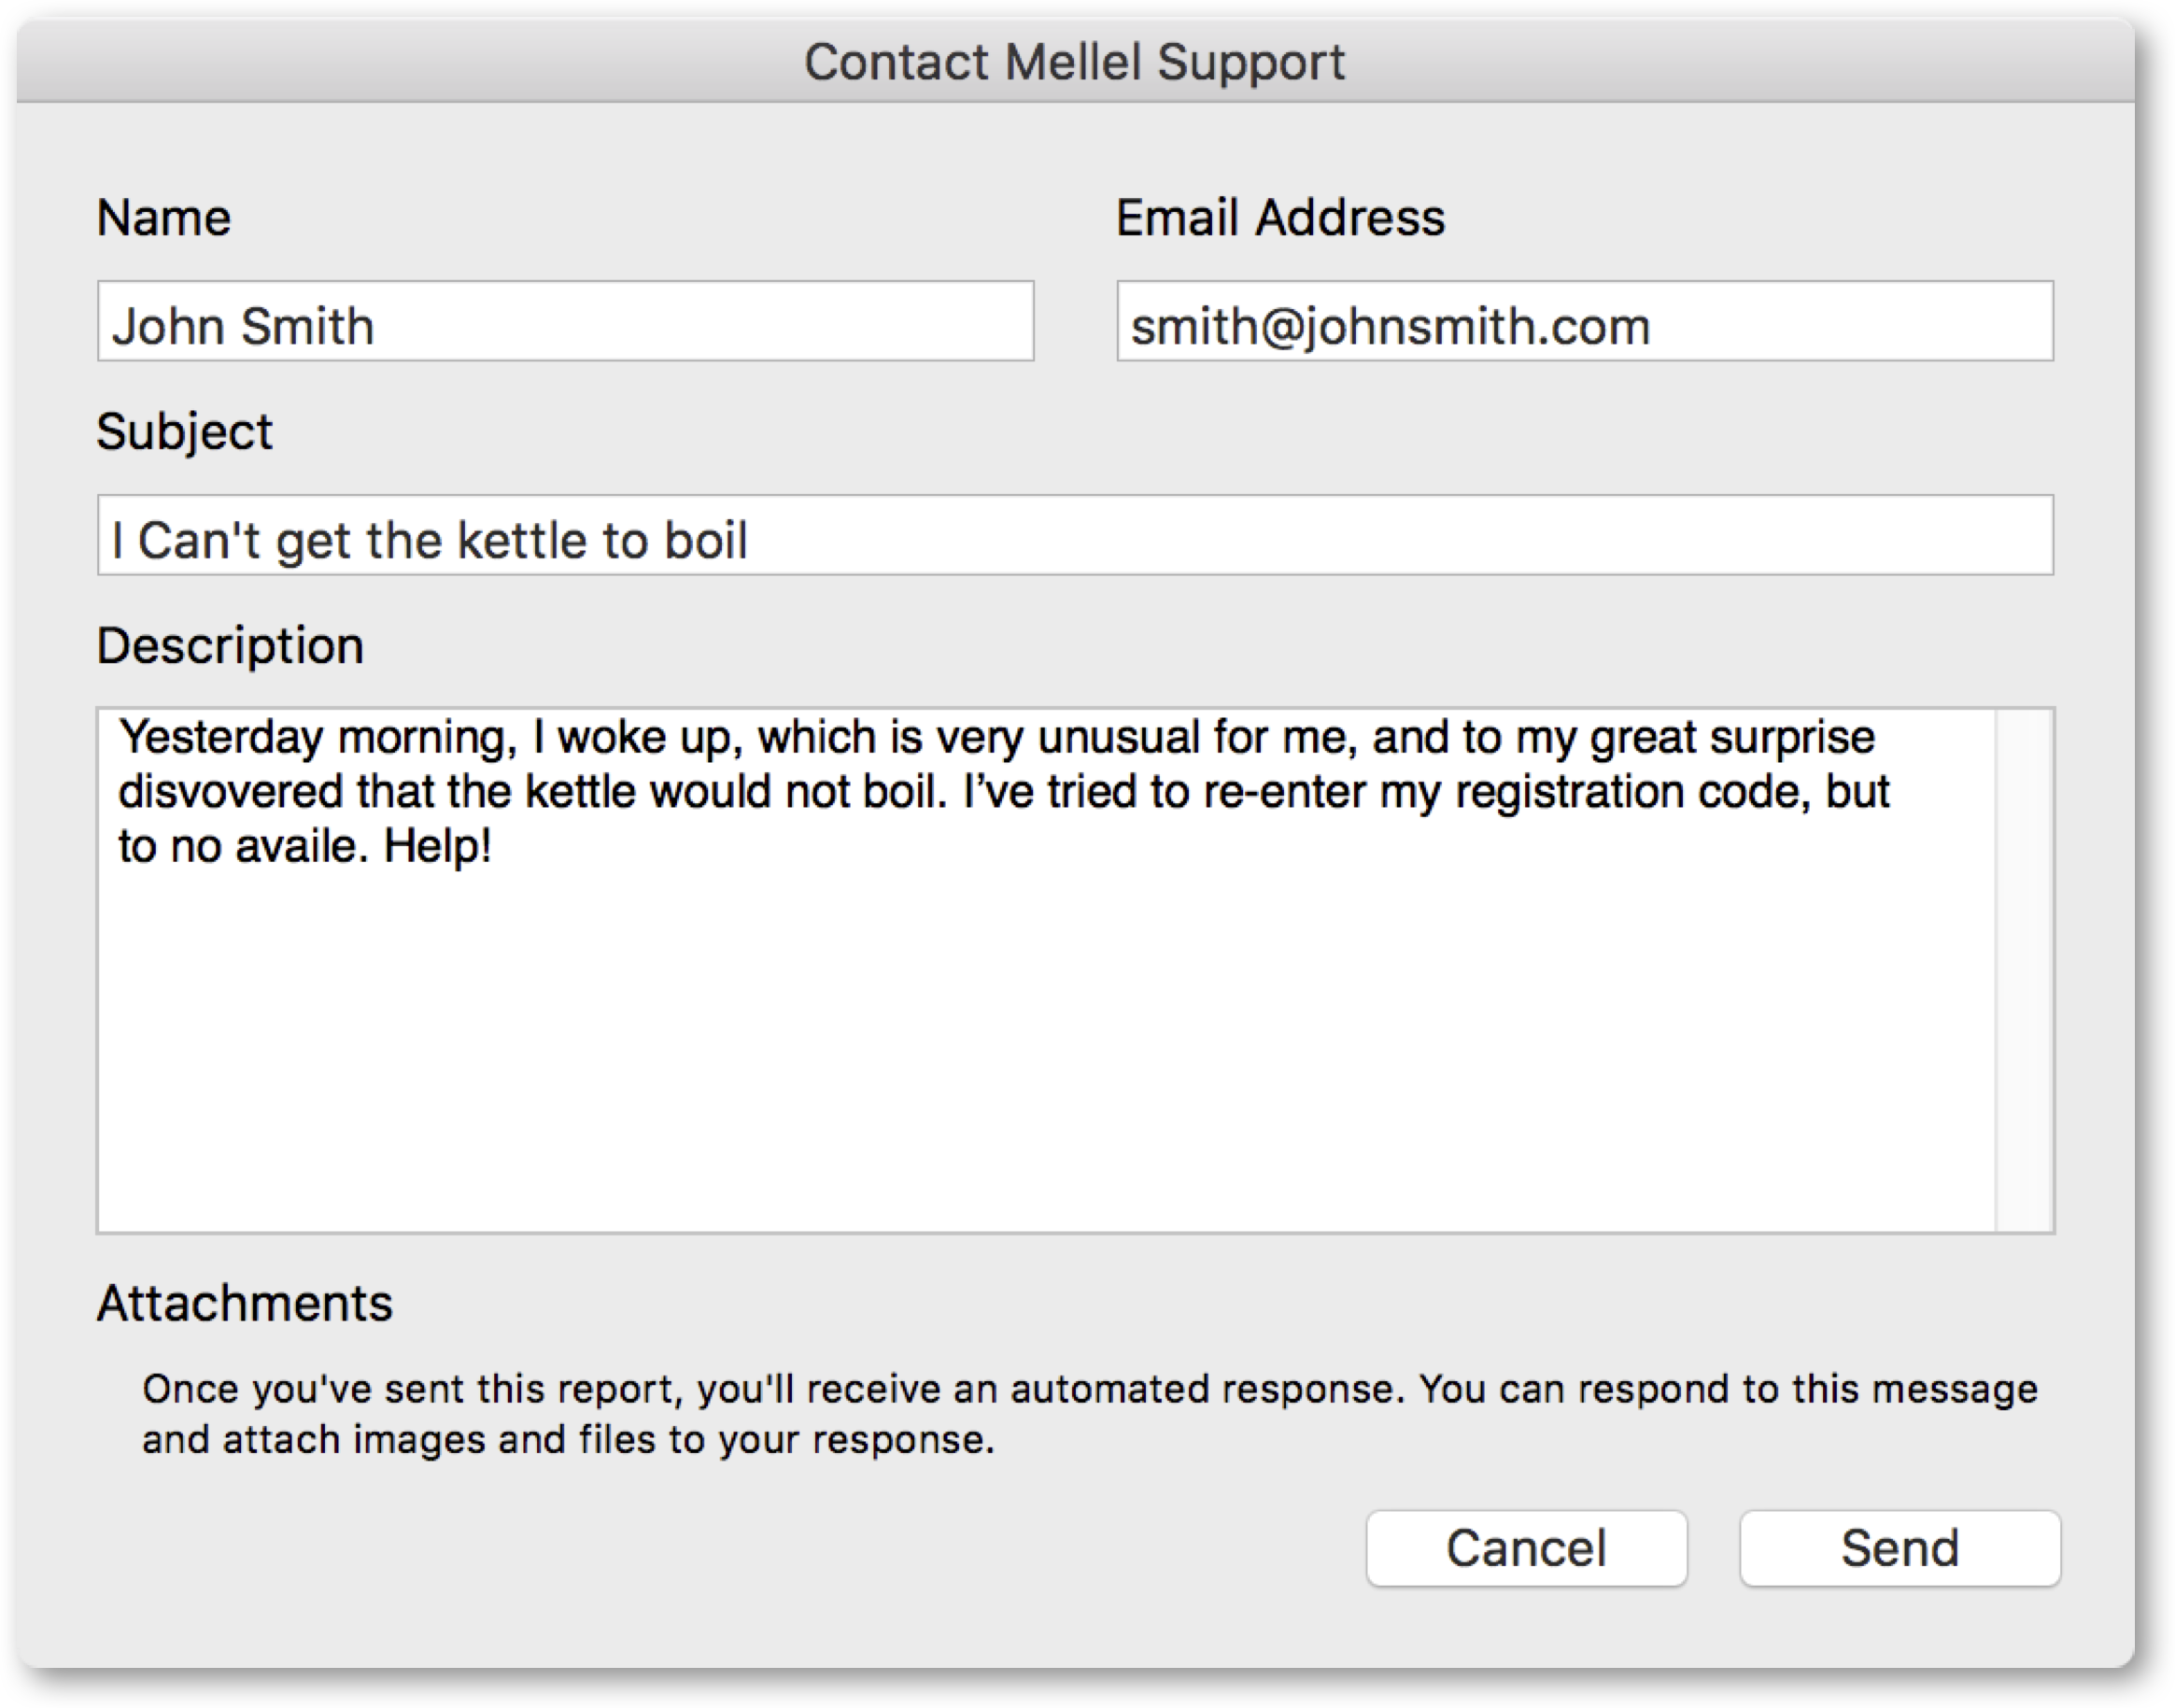 Contacting Mellel Support